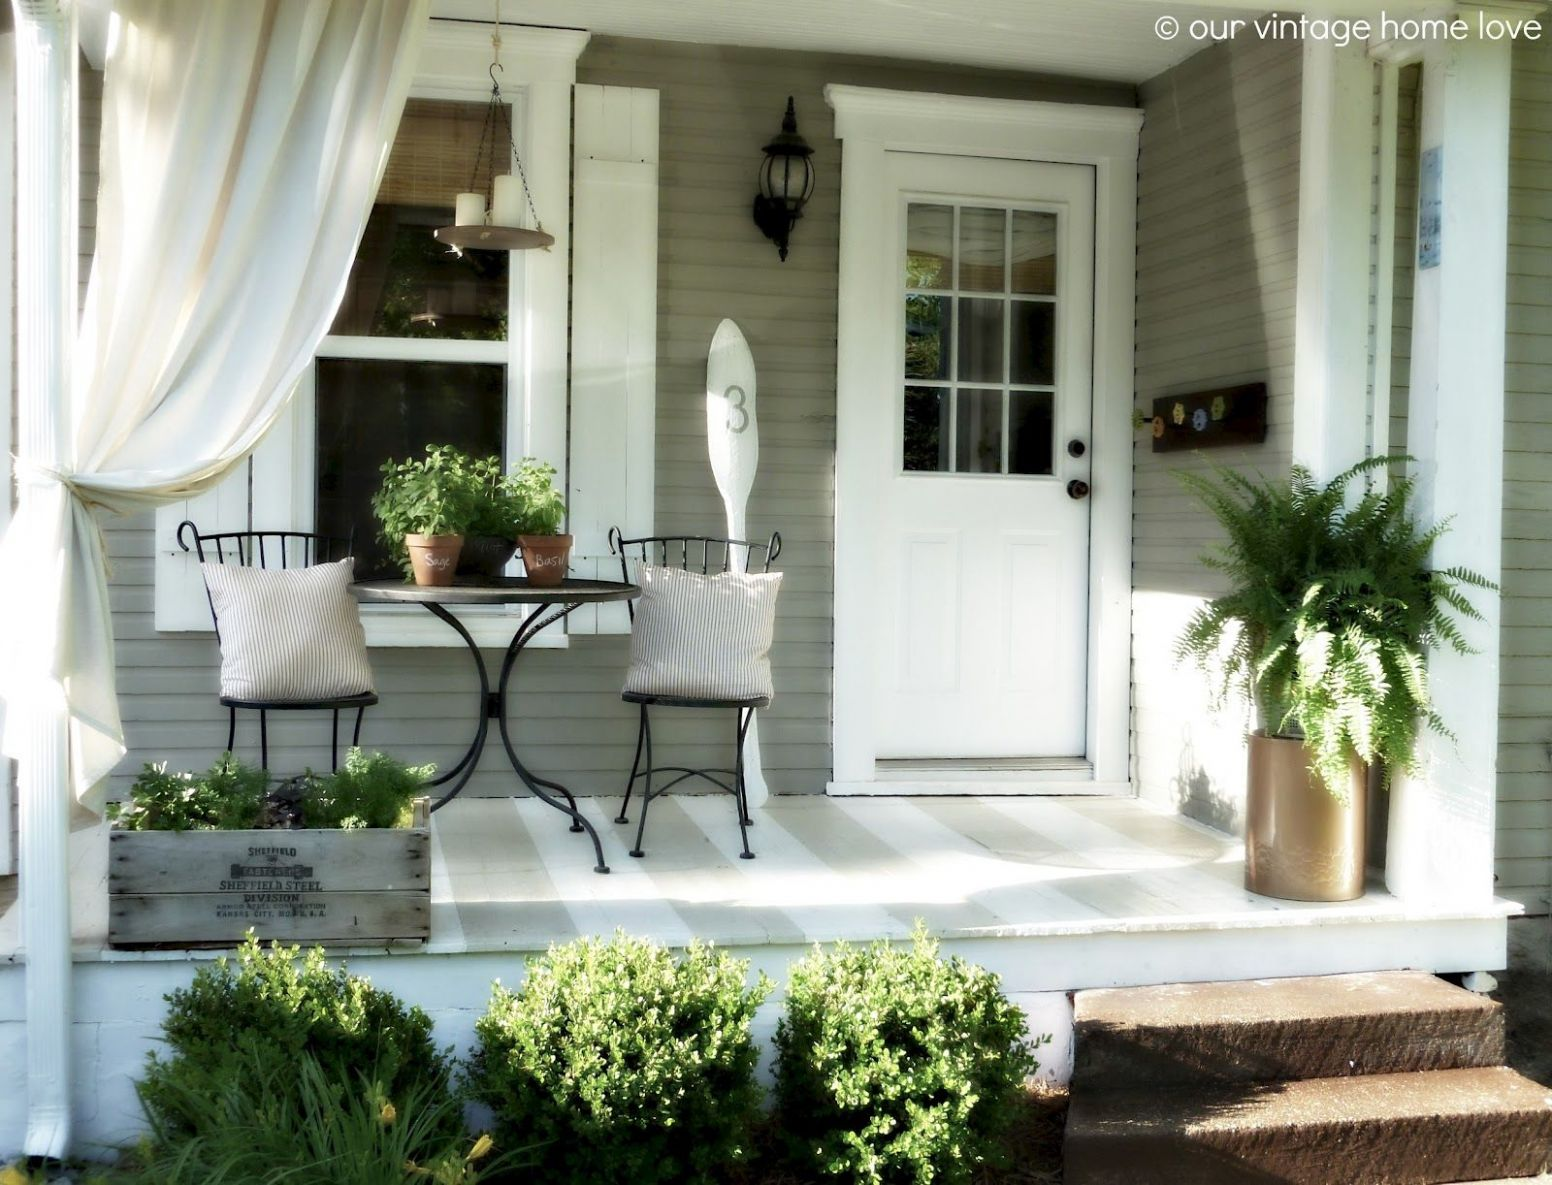 Pin on Front Door/Porch Summer Decor - front porch decor for summer